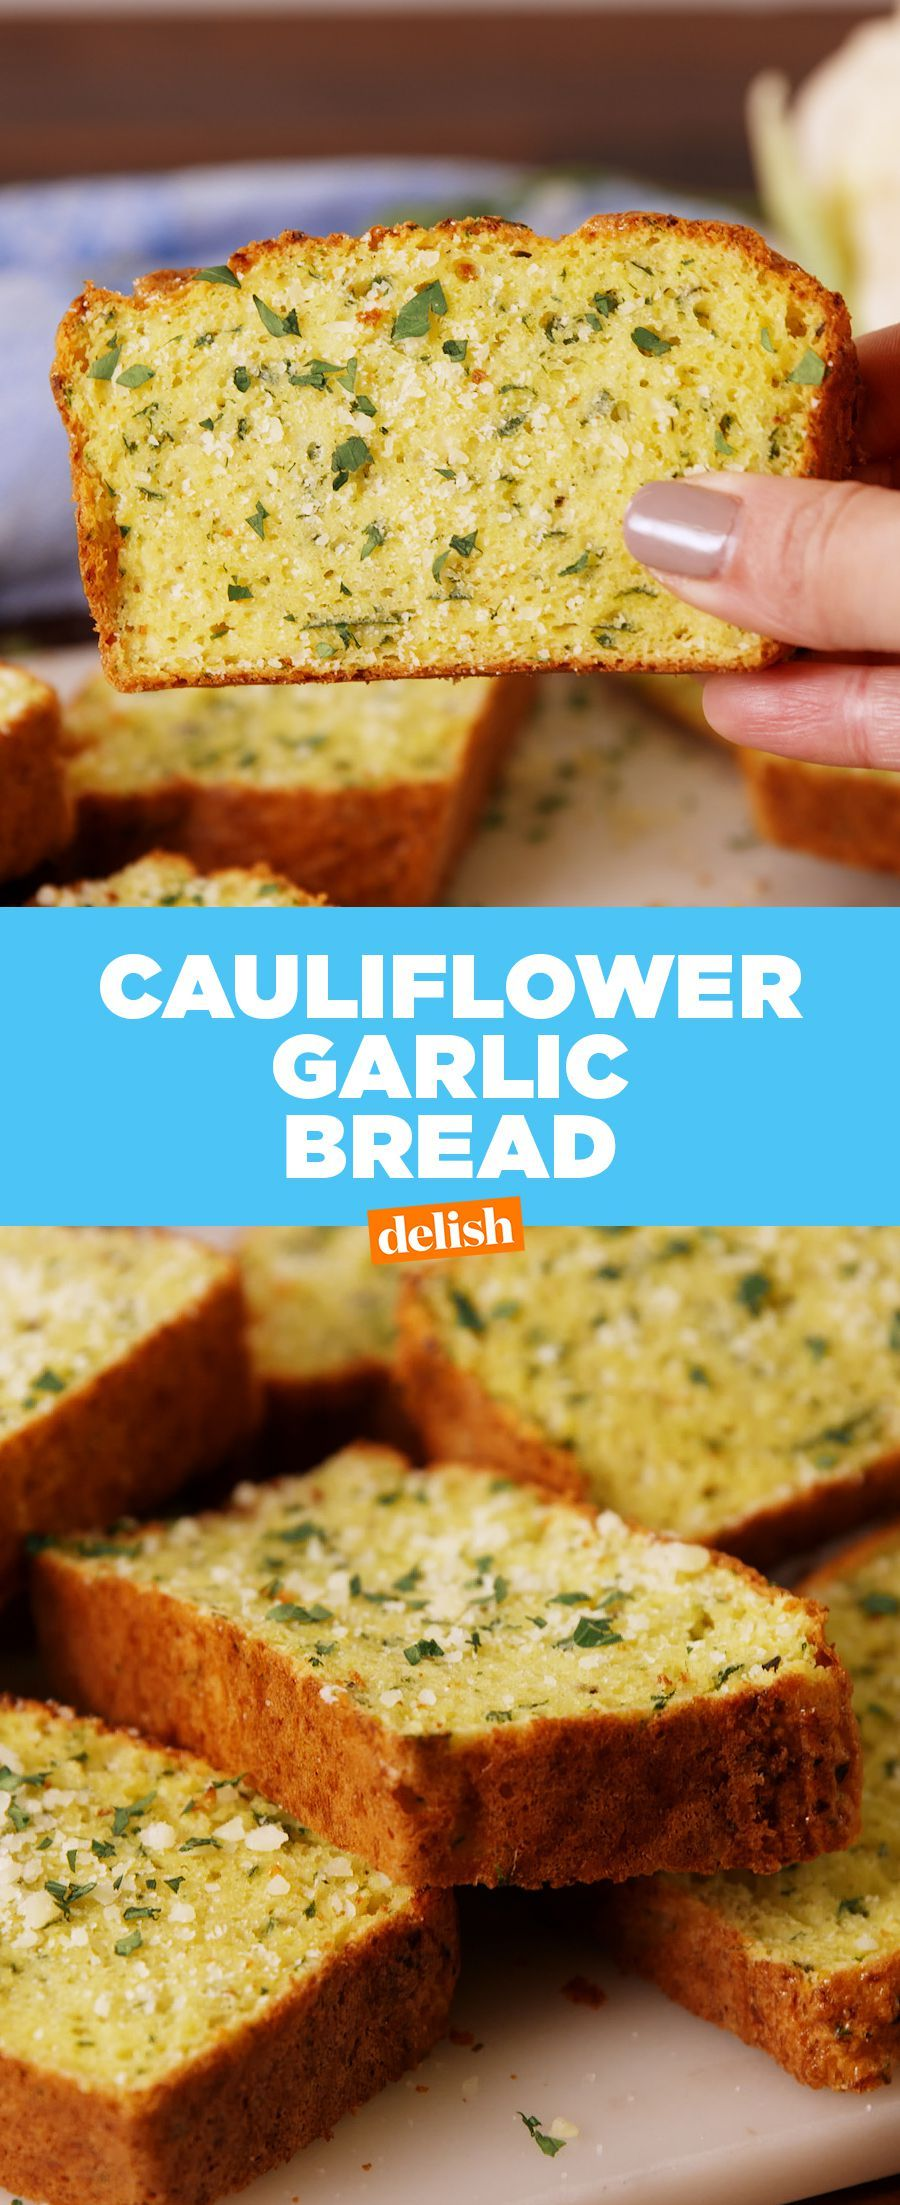 Cauliflower Garlic Bread Recipe Keto Diet Cauliflower Garlic